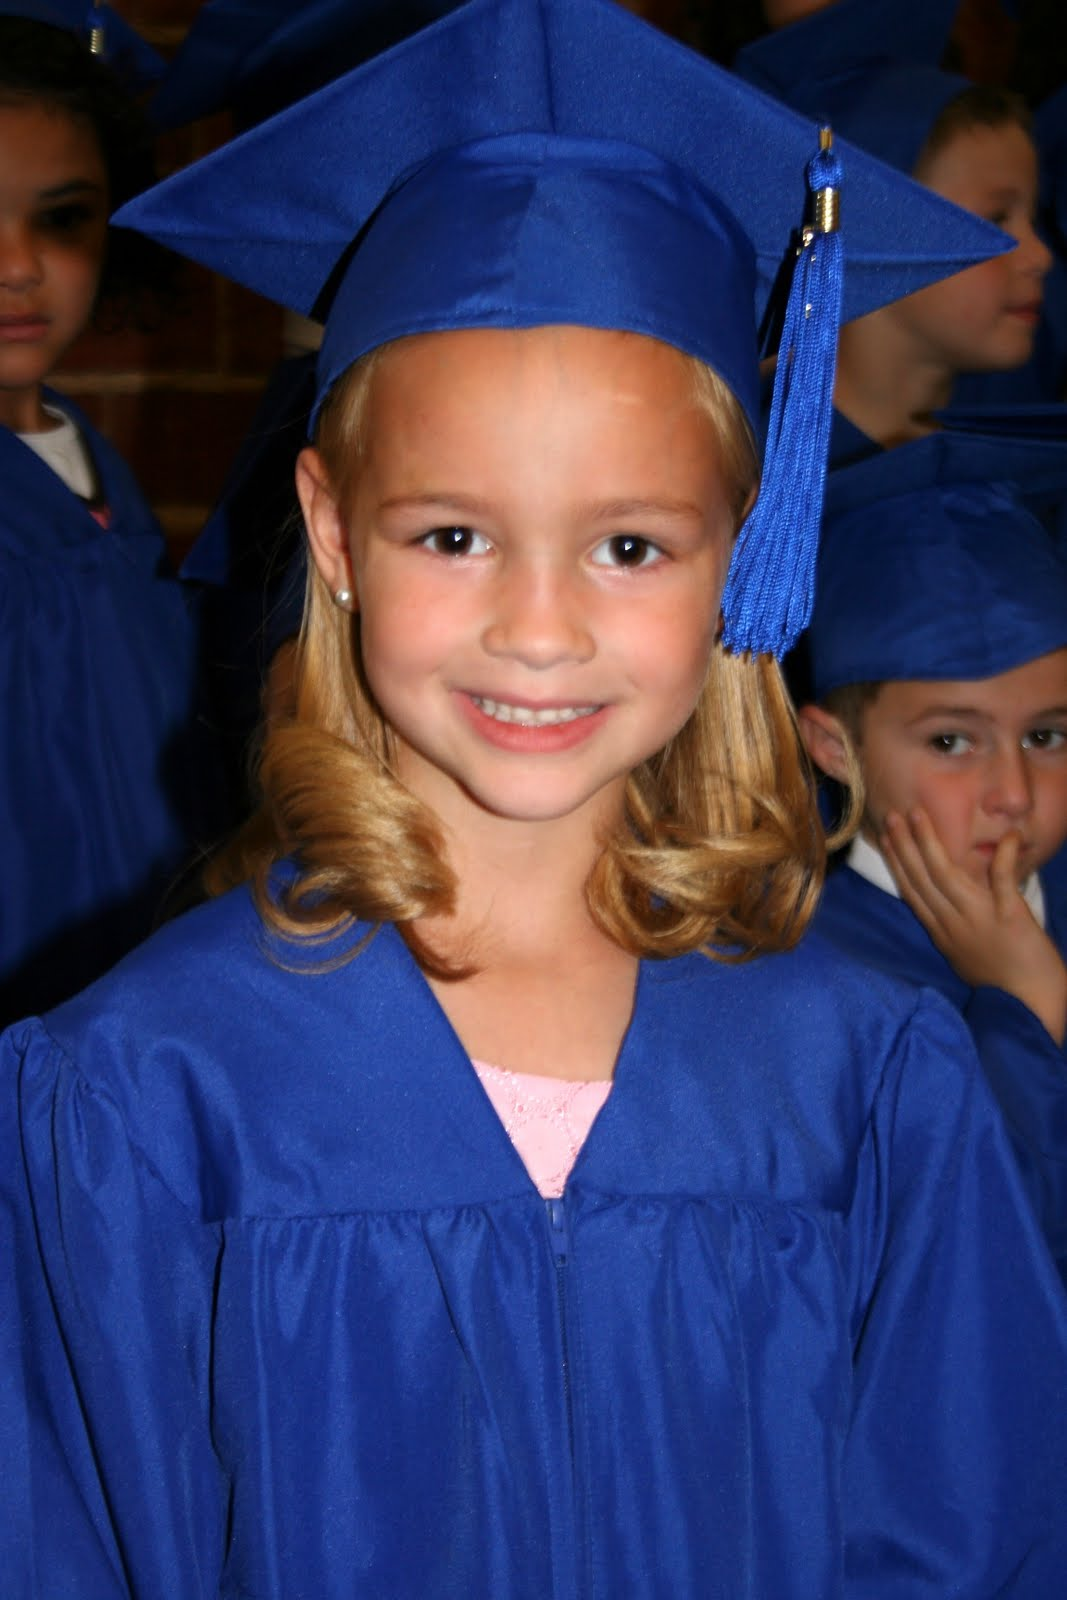 hairstyles for elementary graduation: hoot designs th grade